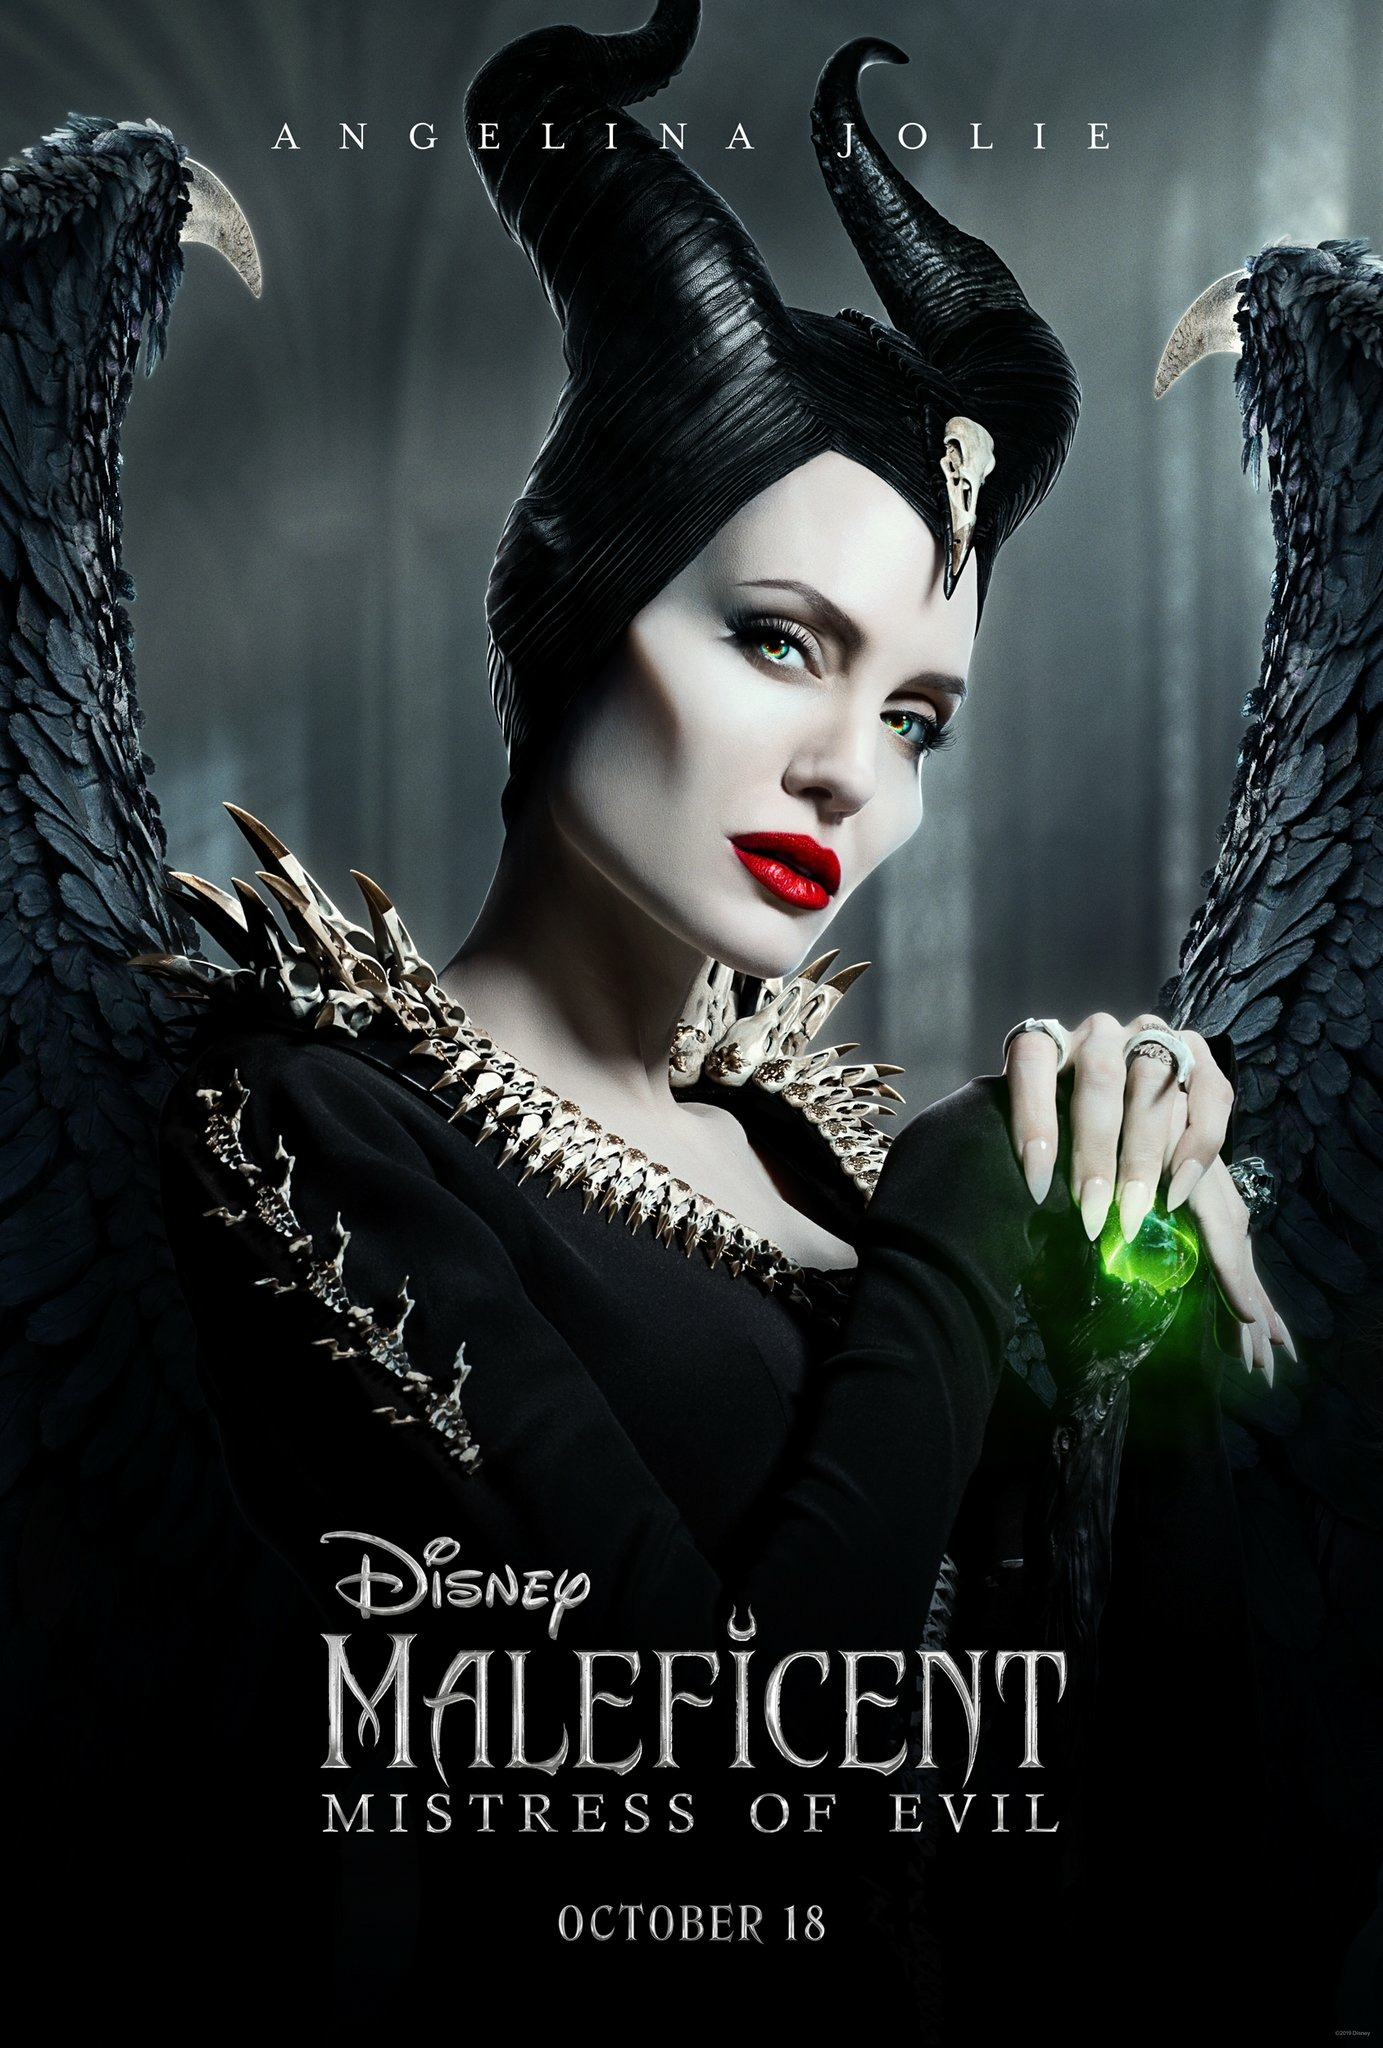 Maleficent Mistress of Evil Character Posters Angelina Jolie as Maleficent